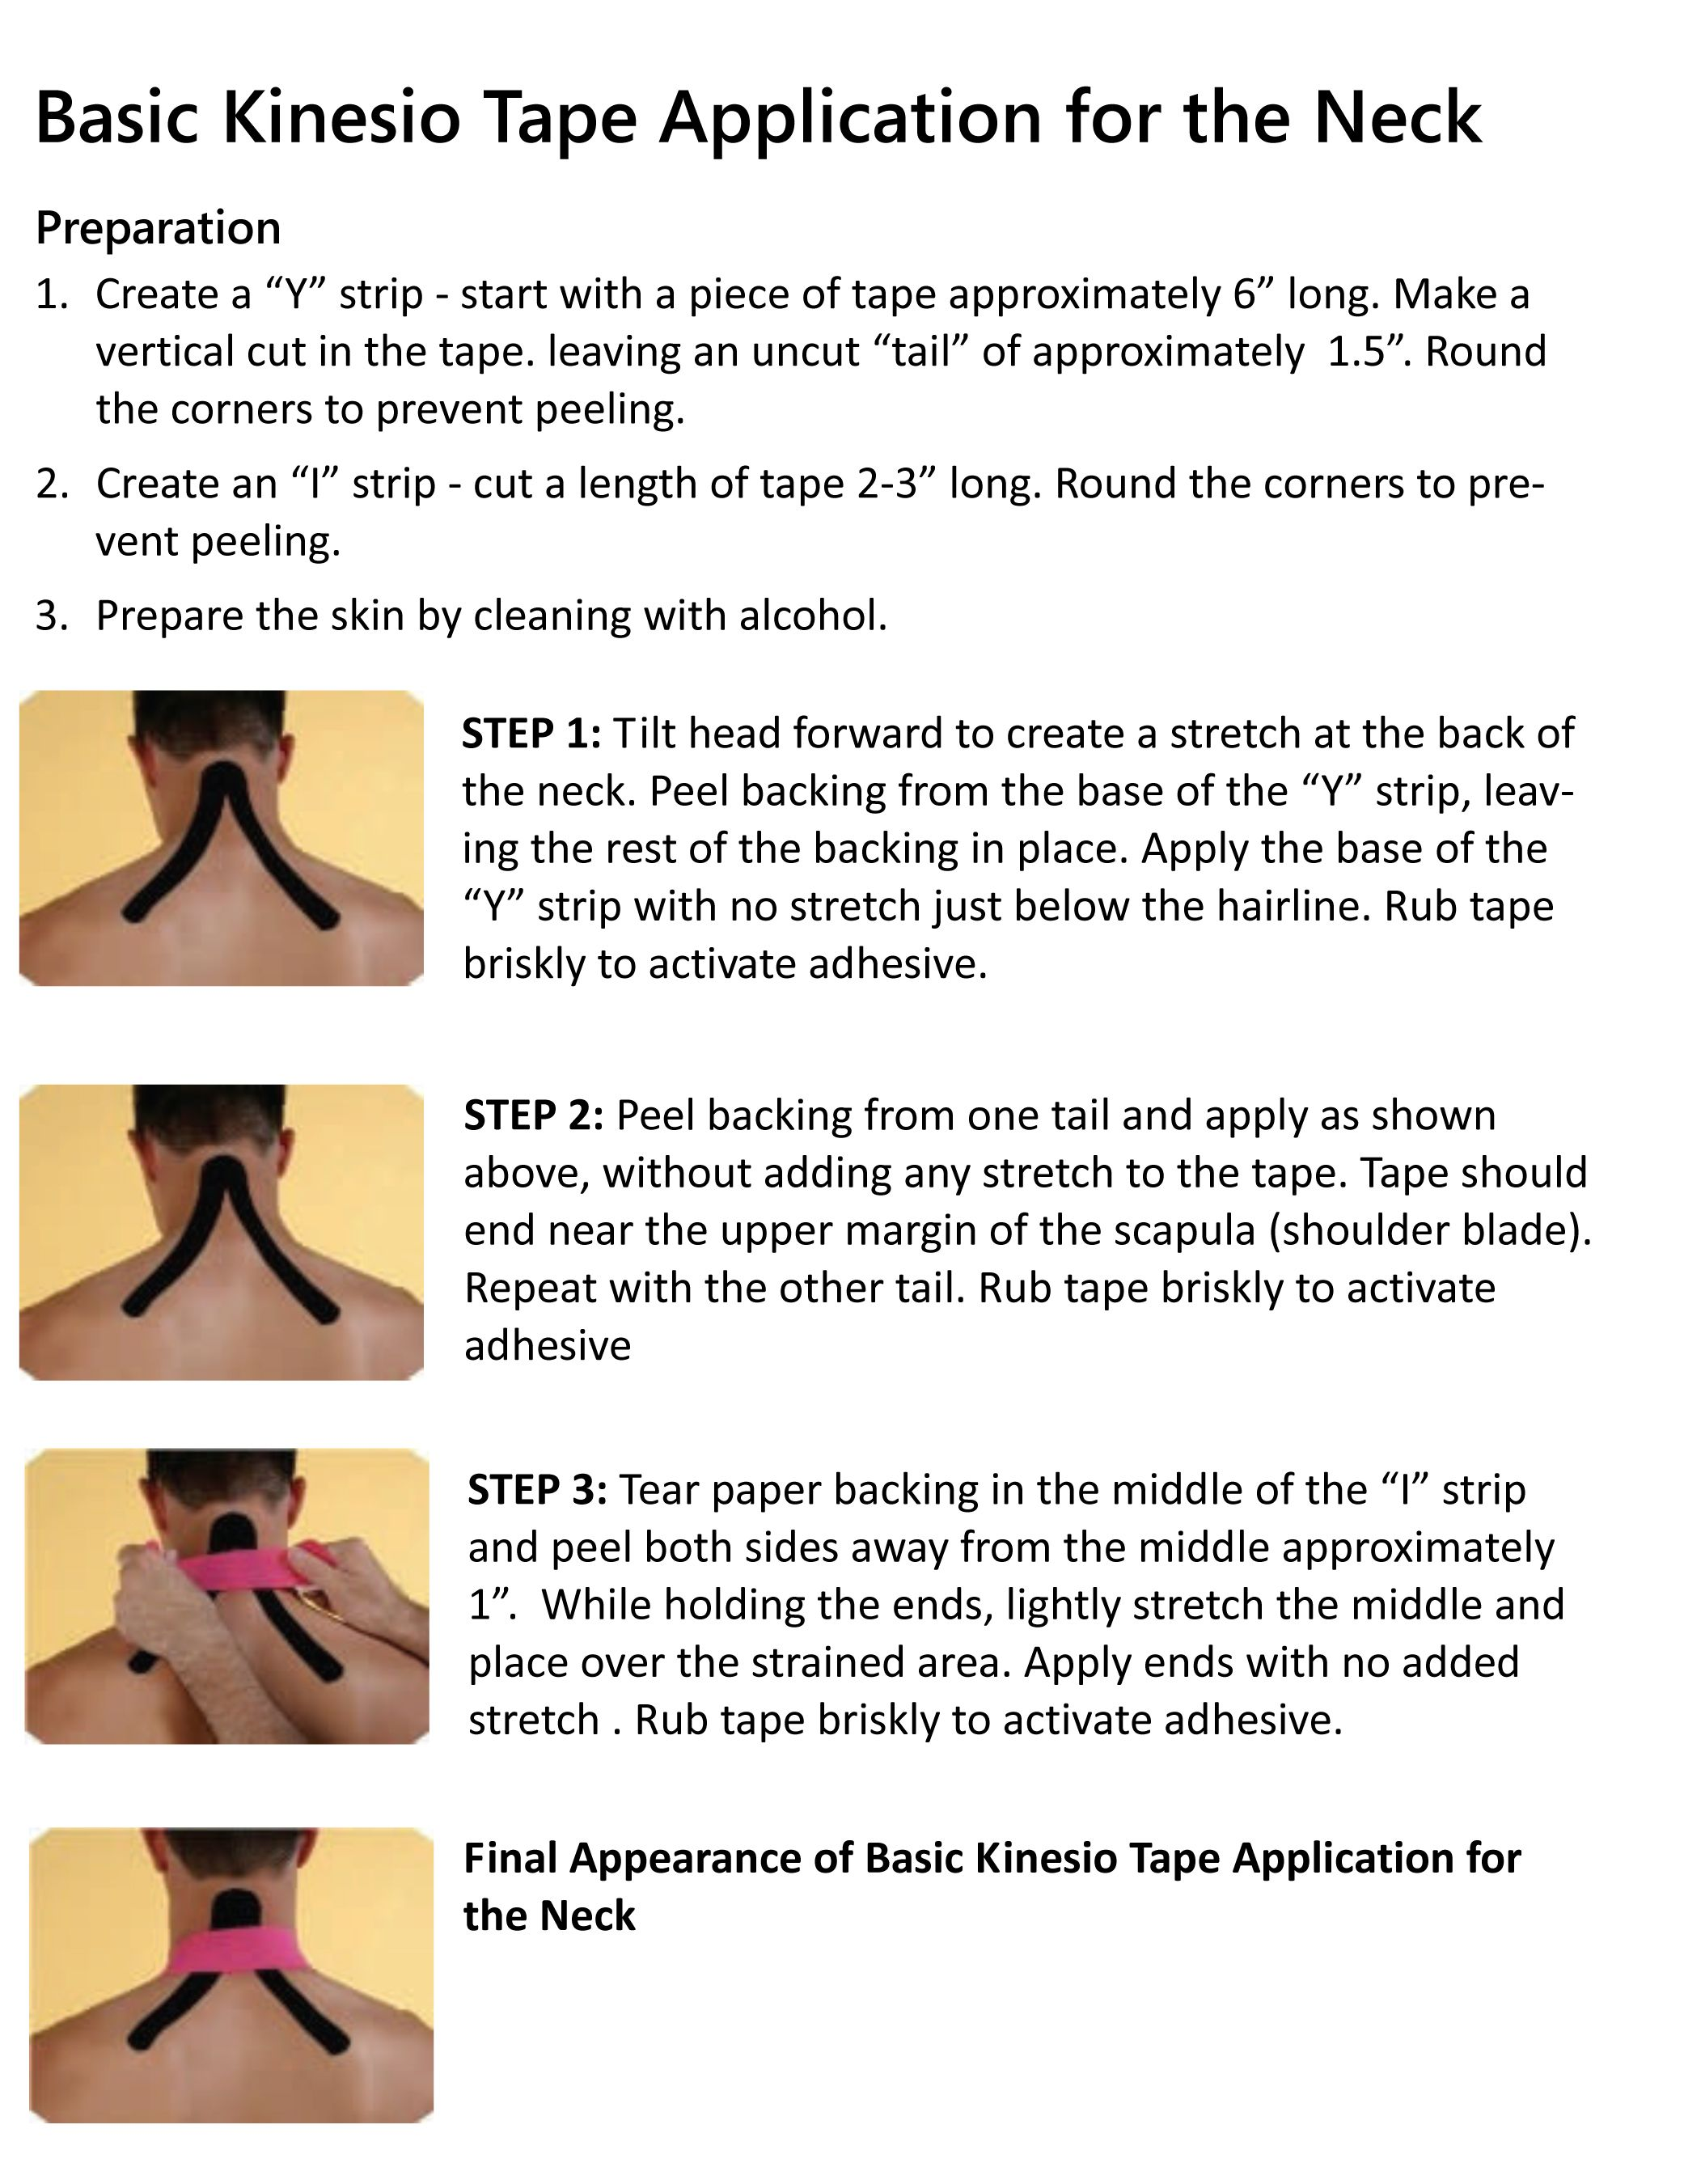 Simple Kinesiology Taping Instructions For Neck Kinesiology Tape